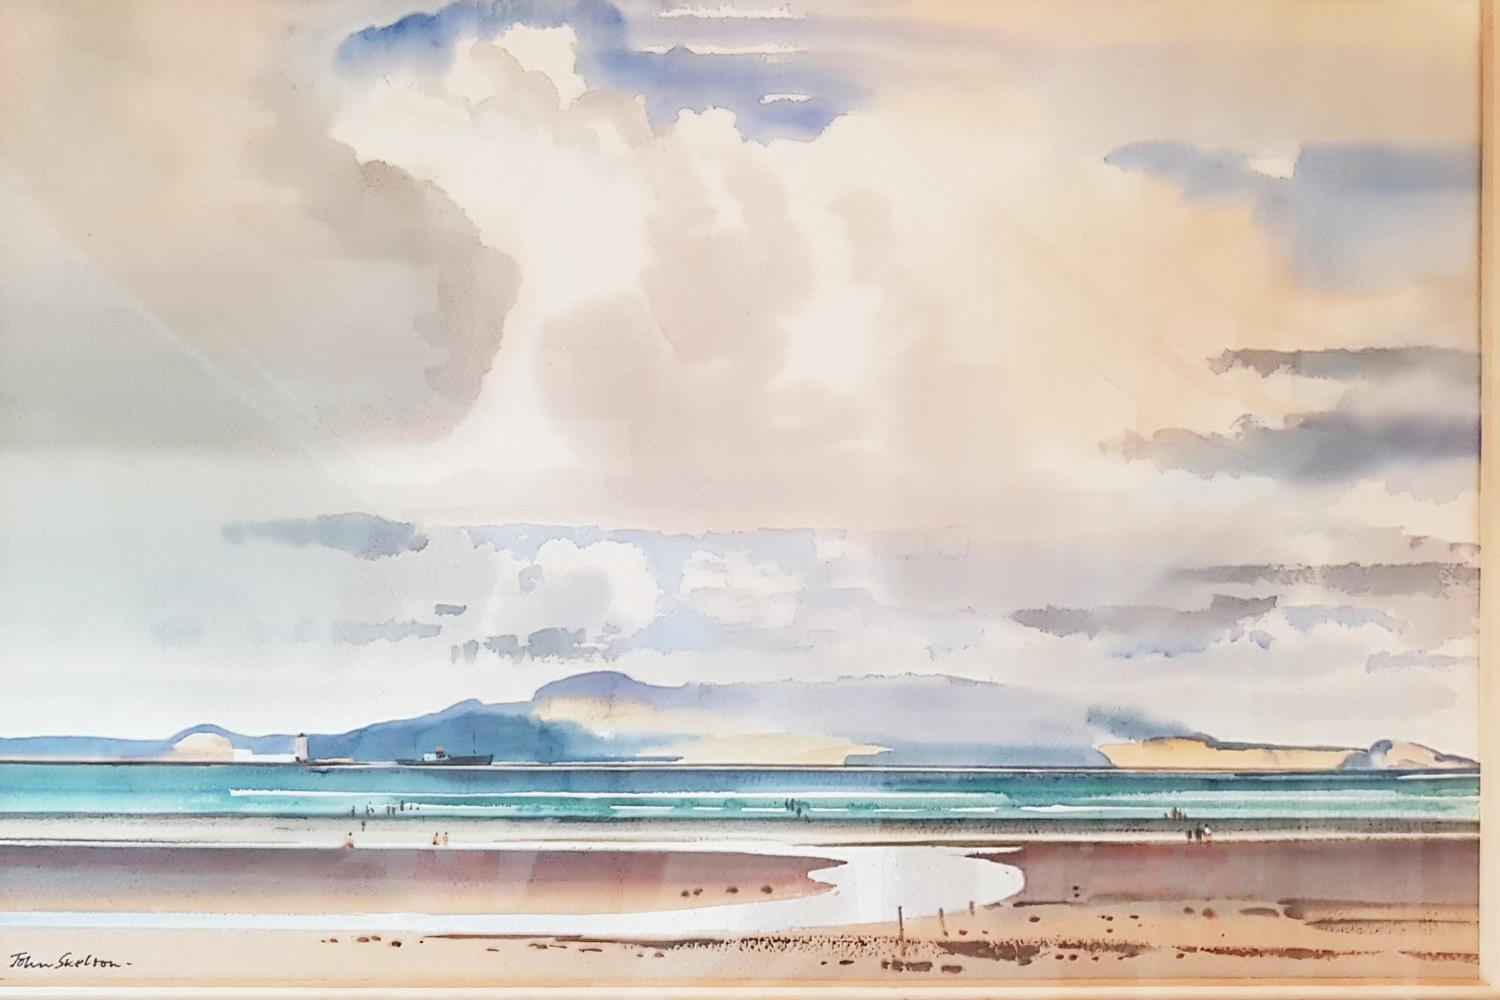 Lot 44 - A 20th Century Watercolour of the Seaside with a ship and lighthouse in the distance by John